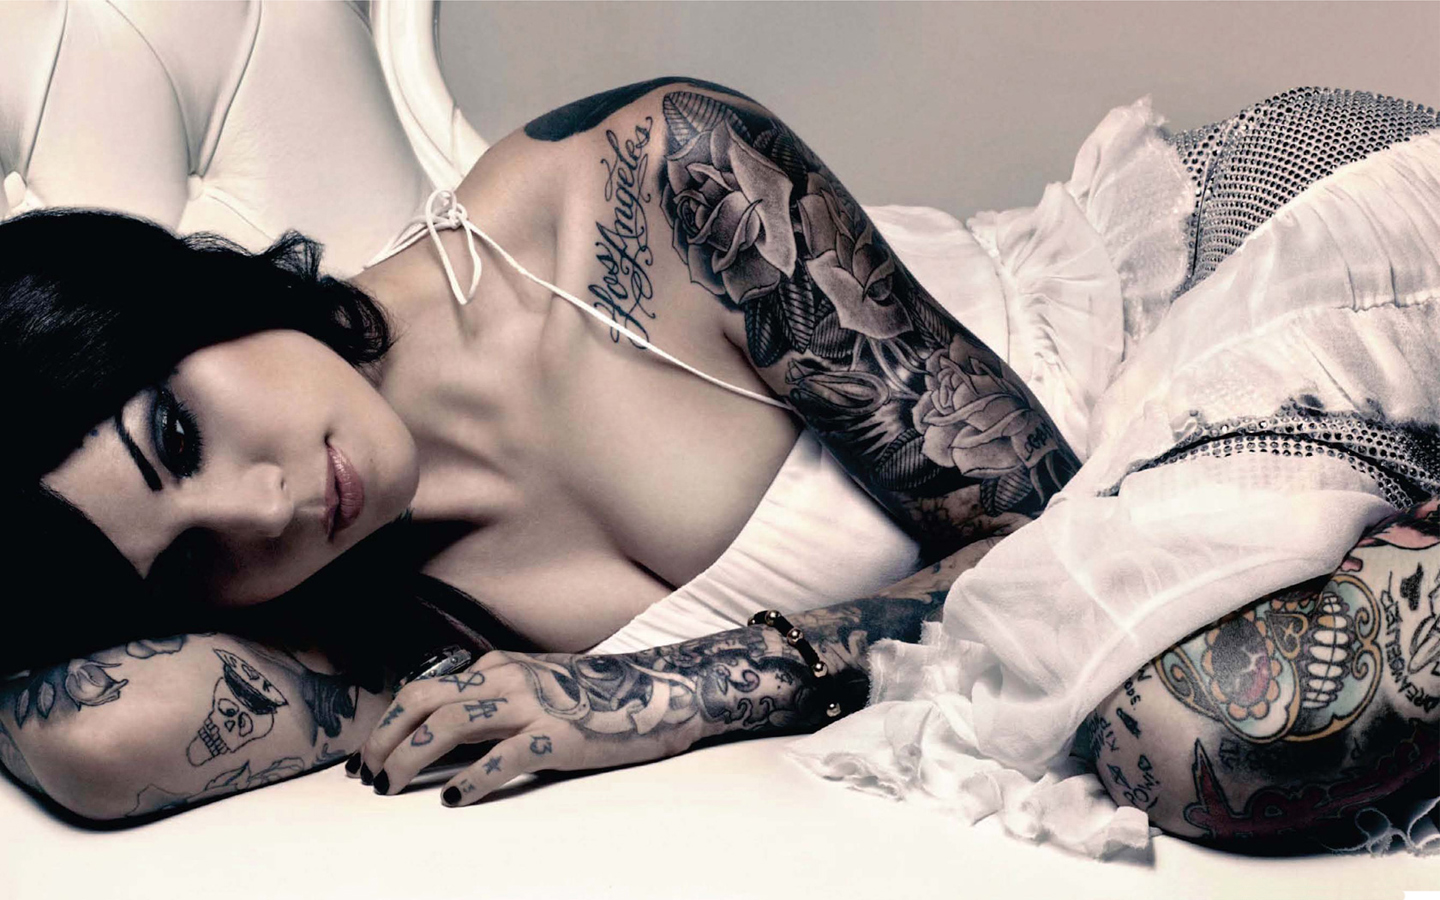 https://lacesandsleeves.files.wordpress.com/2012/09/kat-von-d-wallpaper-hot-and-sexy-picture-tattoo-images-and-pictures-download-3.jpg